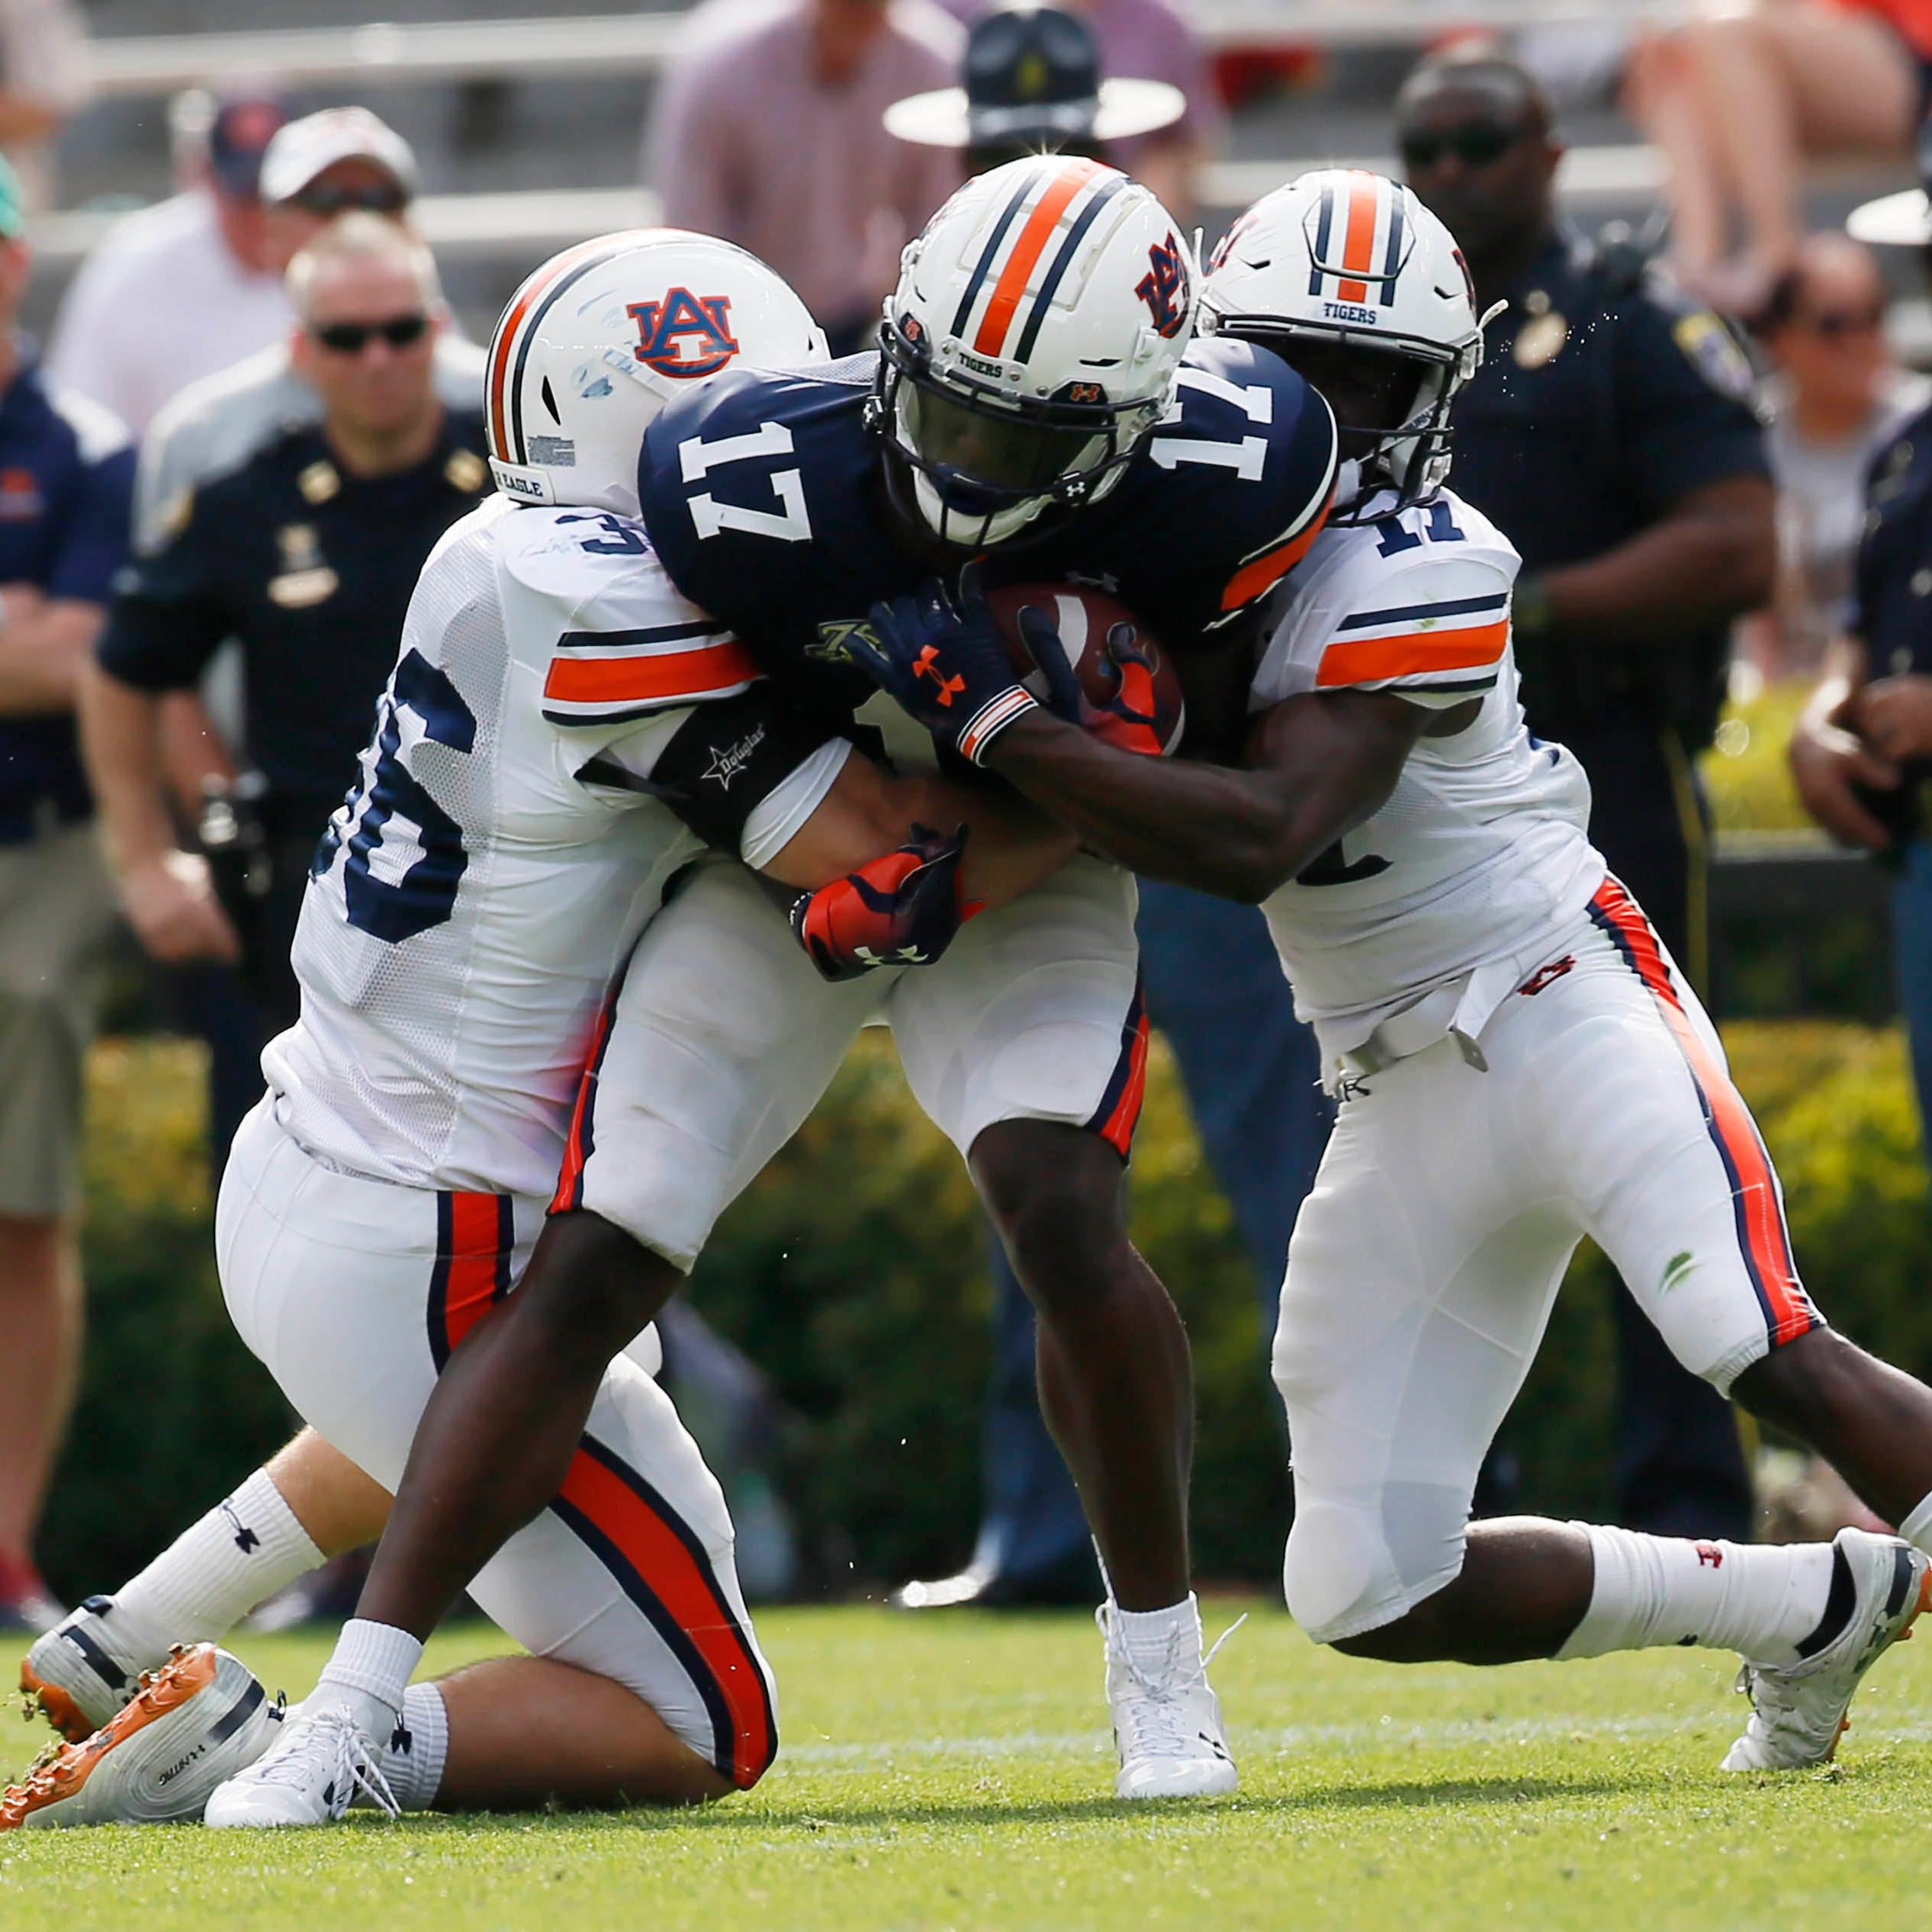 'I want the ball': Auburn wide receiver Marquis McClain determined to make 2019 his year